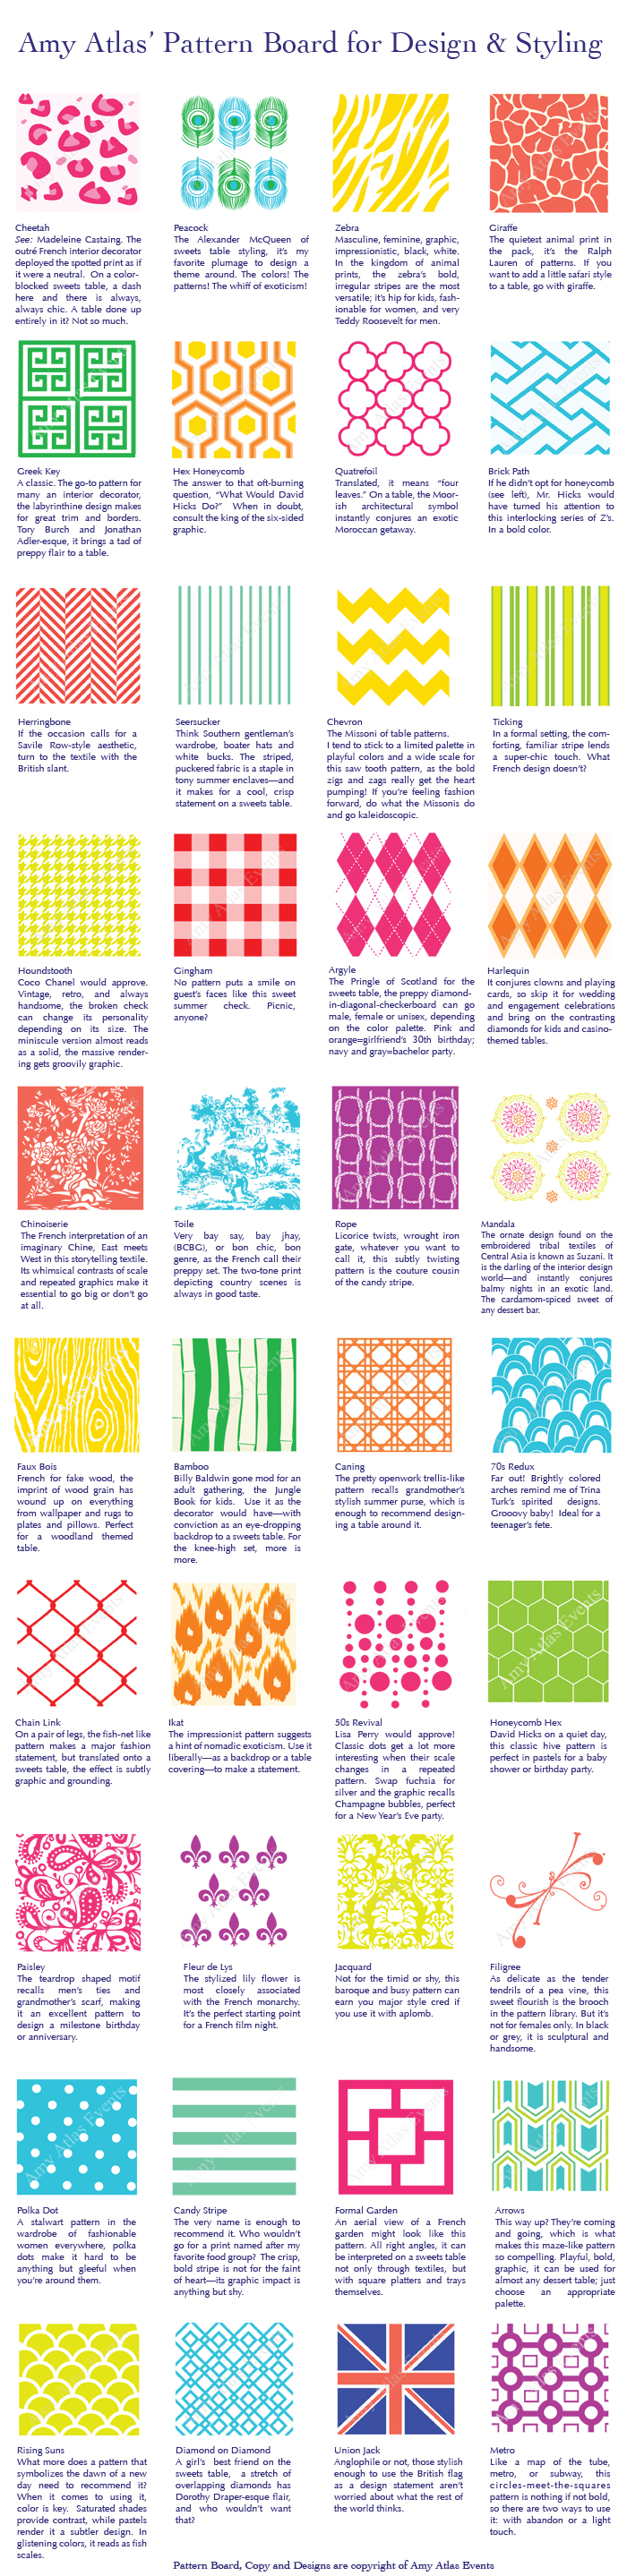 color pattern board FINAL 5 Amy Atlas Pattern Board for Design & Styling